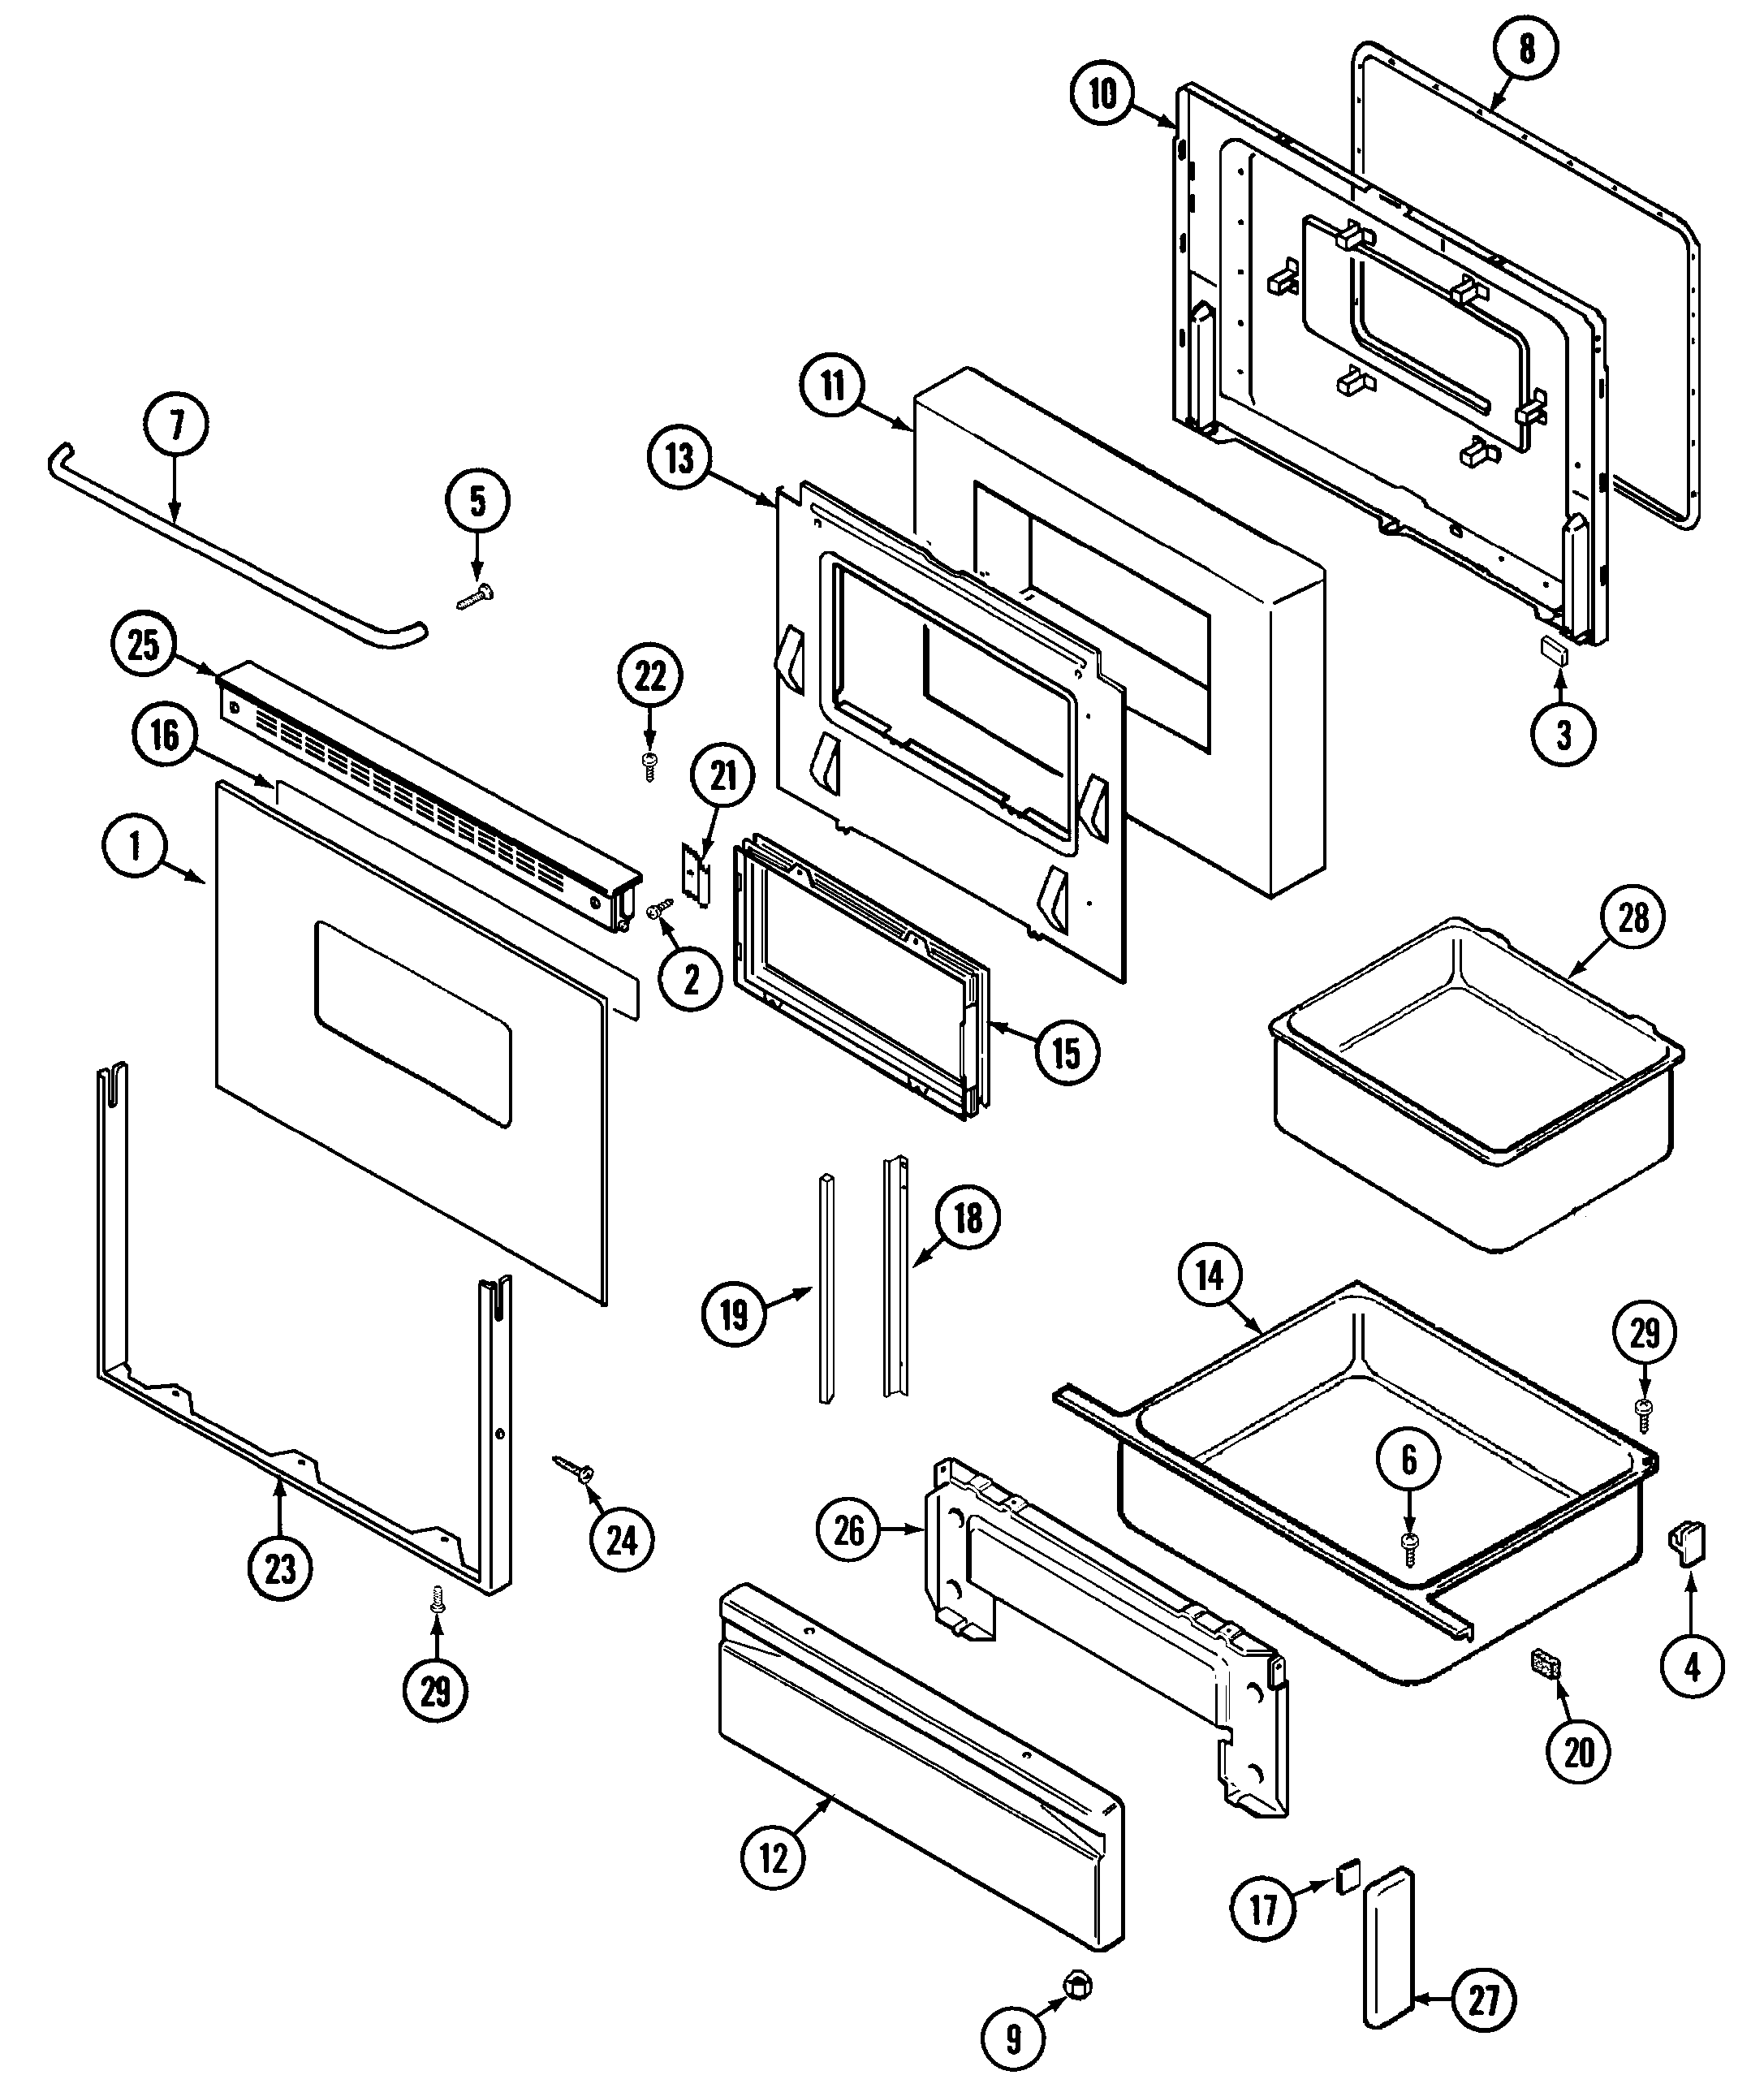 Maytag cre9400acl timer stove clocks and appliance timers cre9400acl range doordrawer parts diagram pooptronica choice image